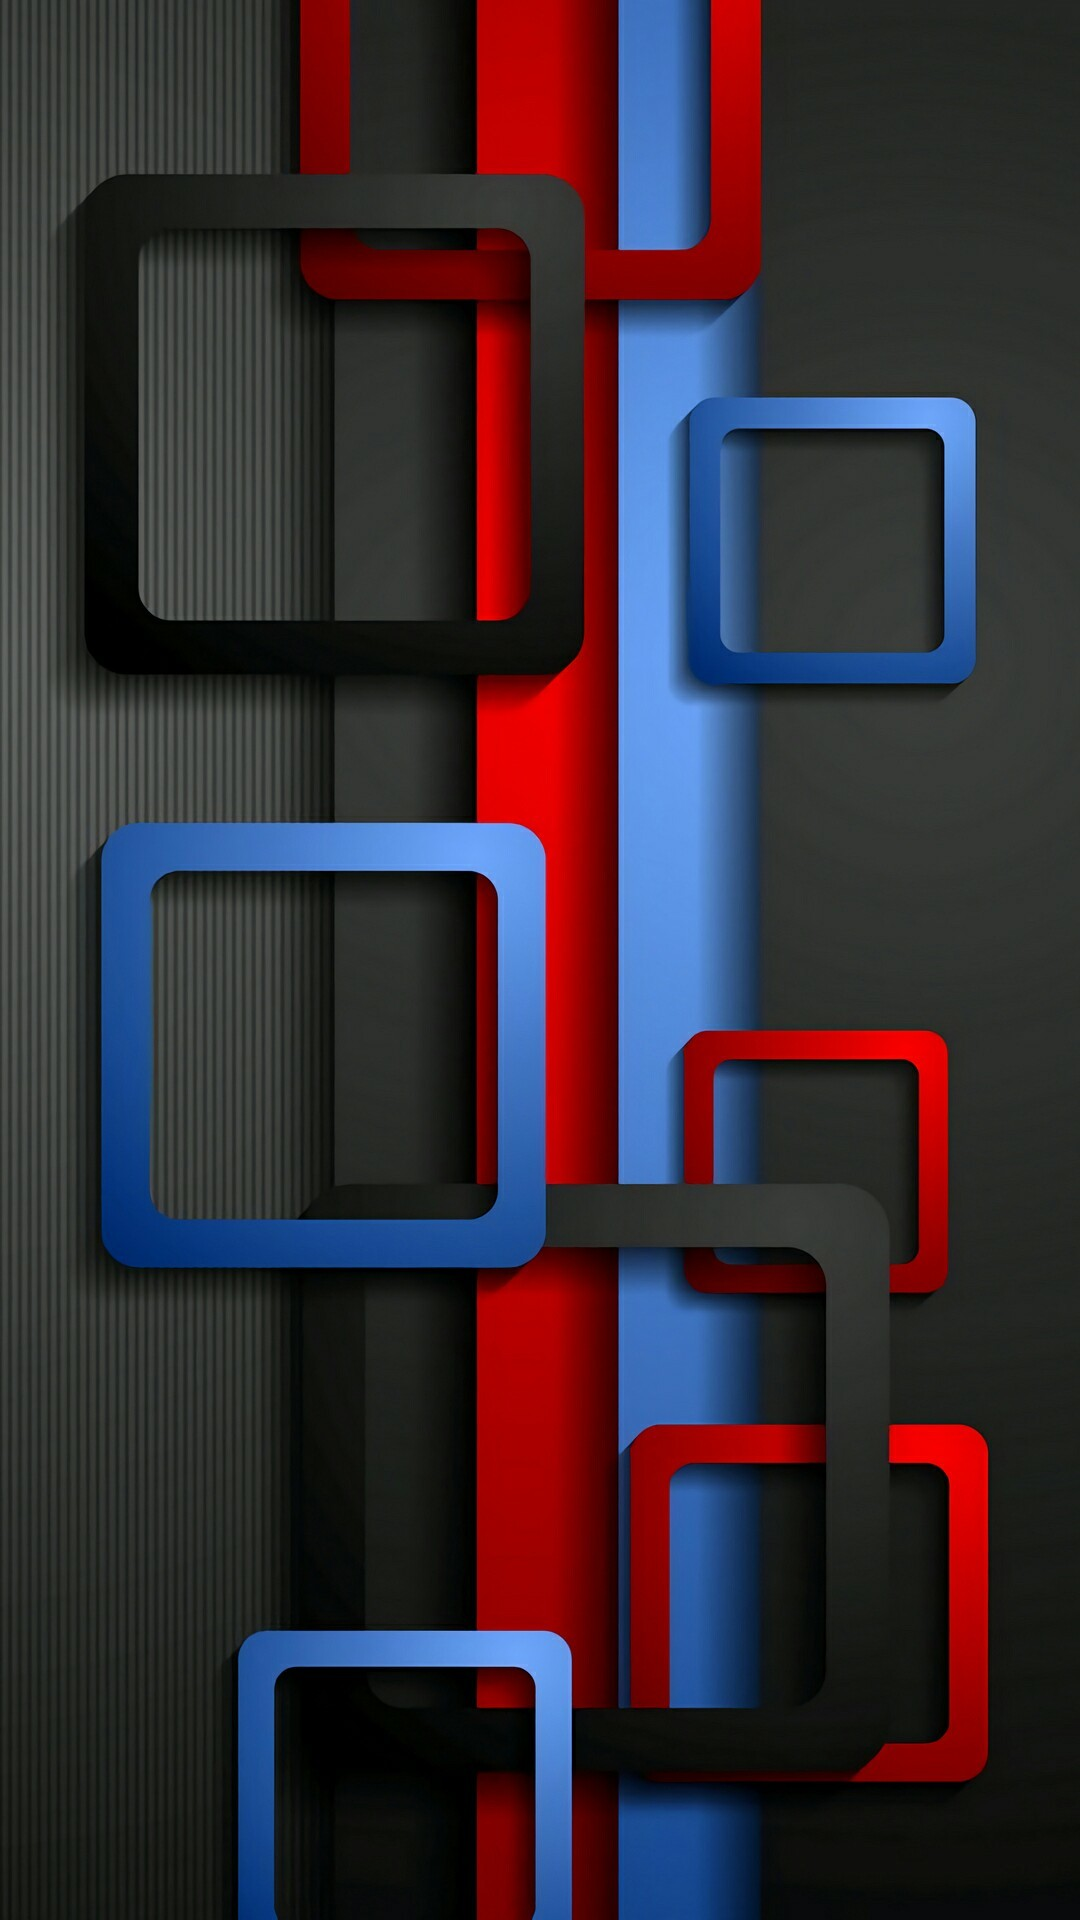 Wallpaper Full HD for Mobile with Red Blue and Black Box – HD Wallpapers  for Free